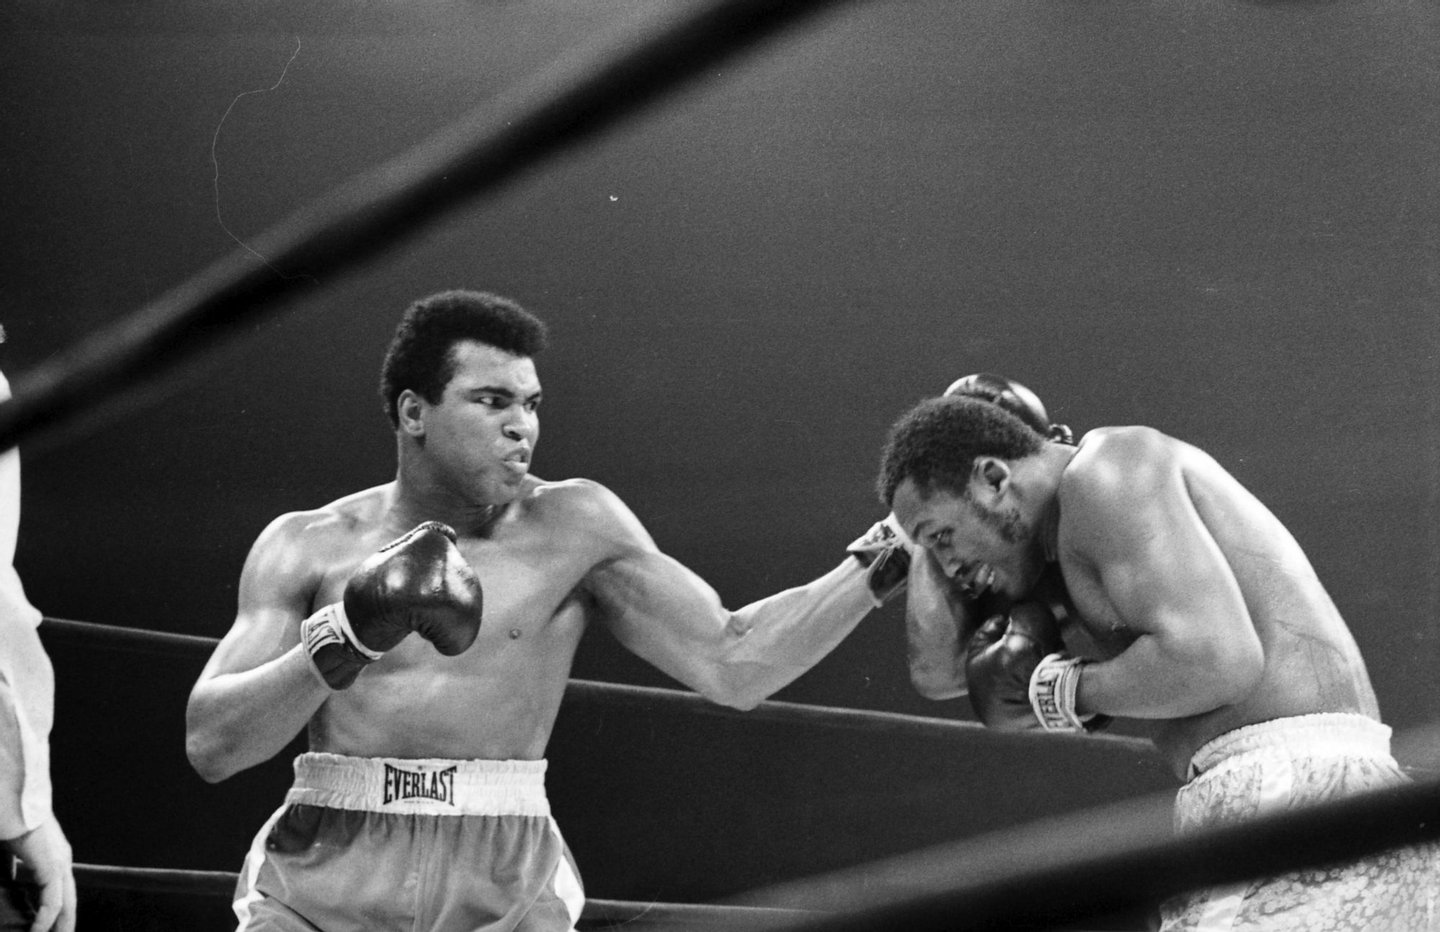 NEW YORK - MARCH 8, 1971: Muhammad Ali lands a left hook to Joe Frazier during a bout at Madison Square Garden on March 8, 1971 in New York, New York. (Photo by: The Ring Magazine/Getty Images)